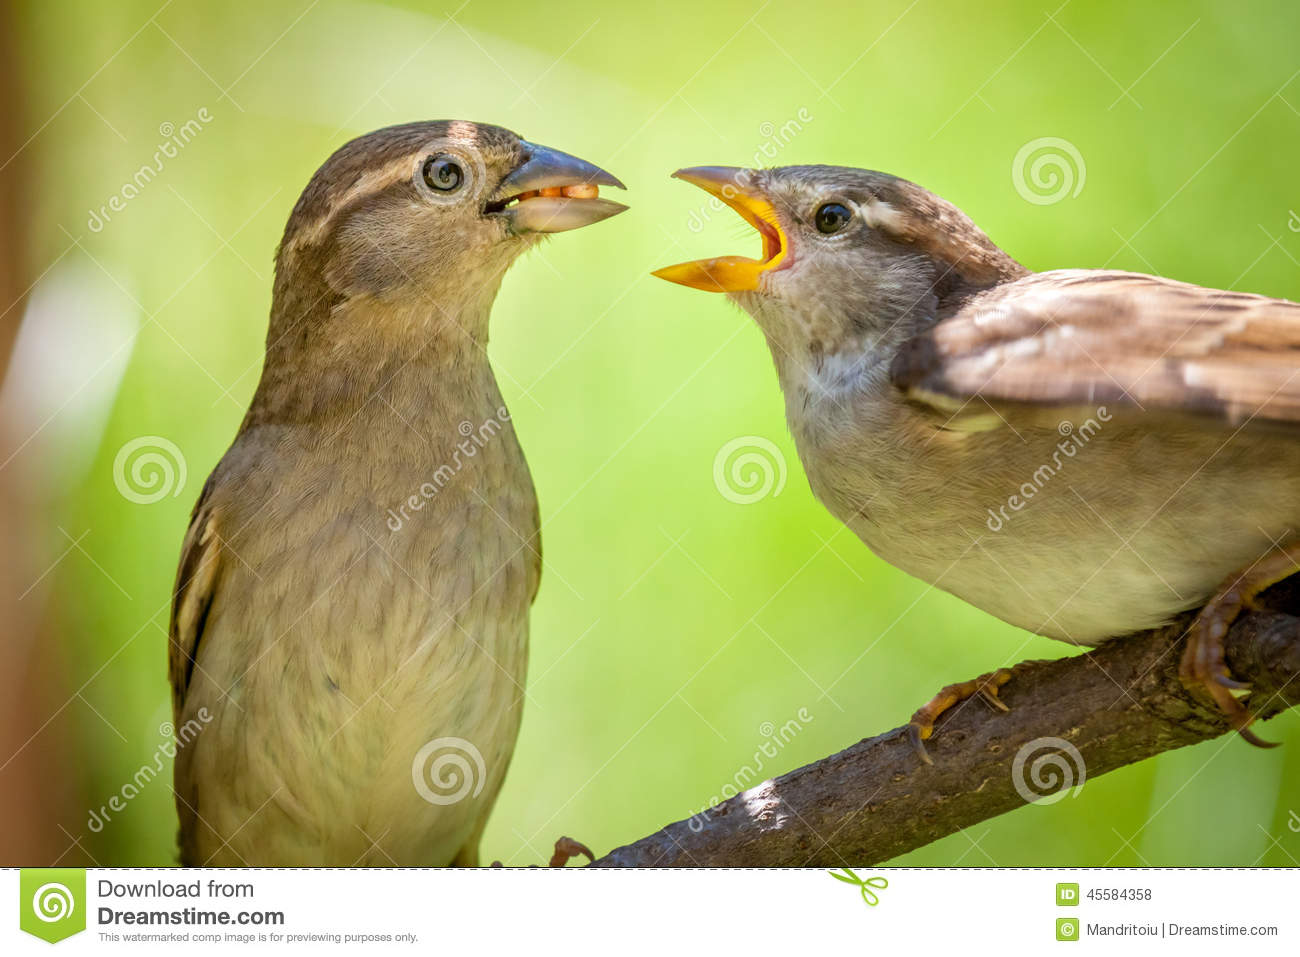 Cute House Finch couple